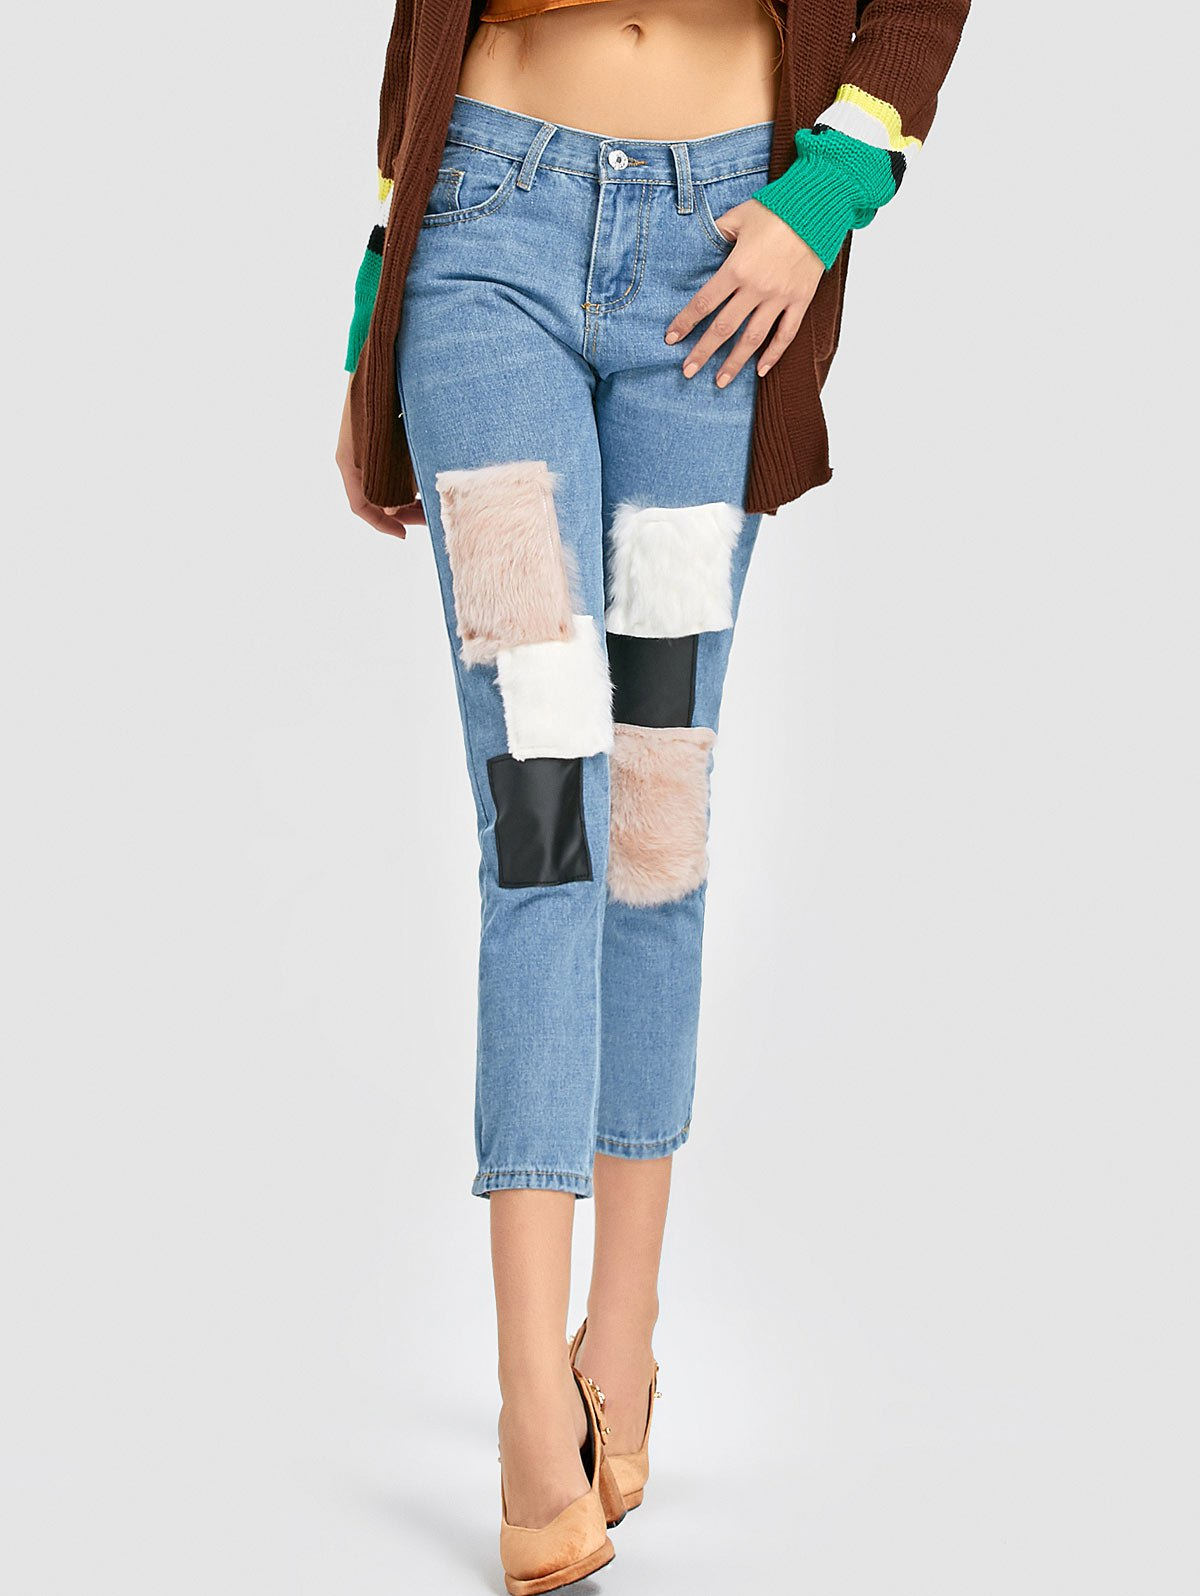 Faux Fur Patch Jeans 232378903